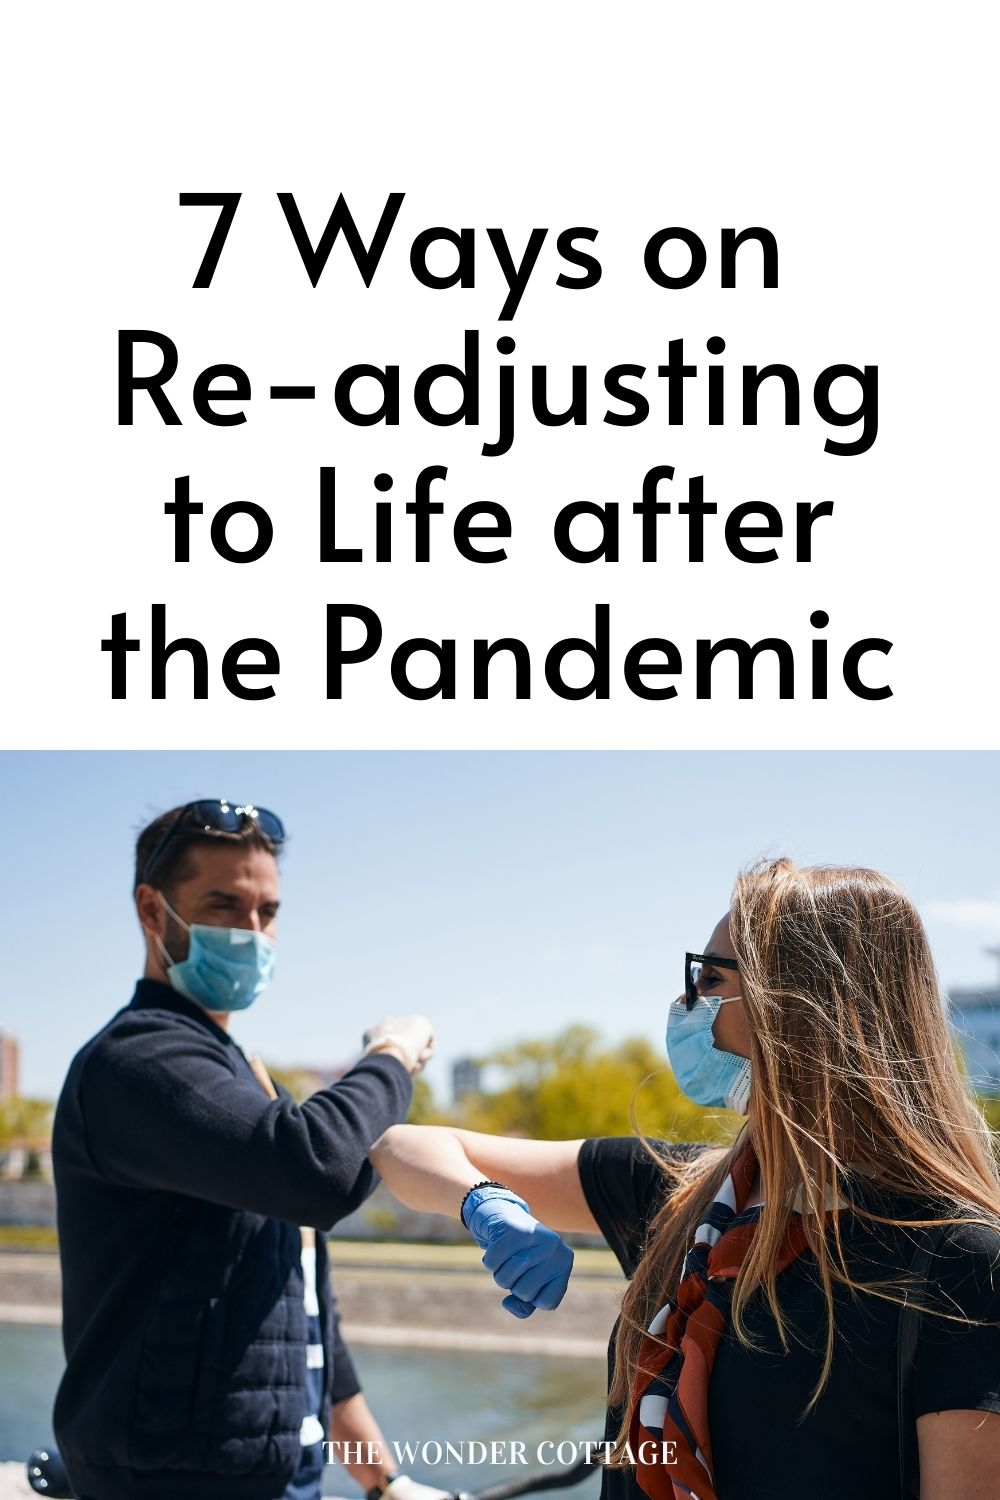 7 Ways on Re-adjusting to Life after the Pandemic